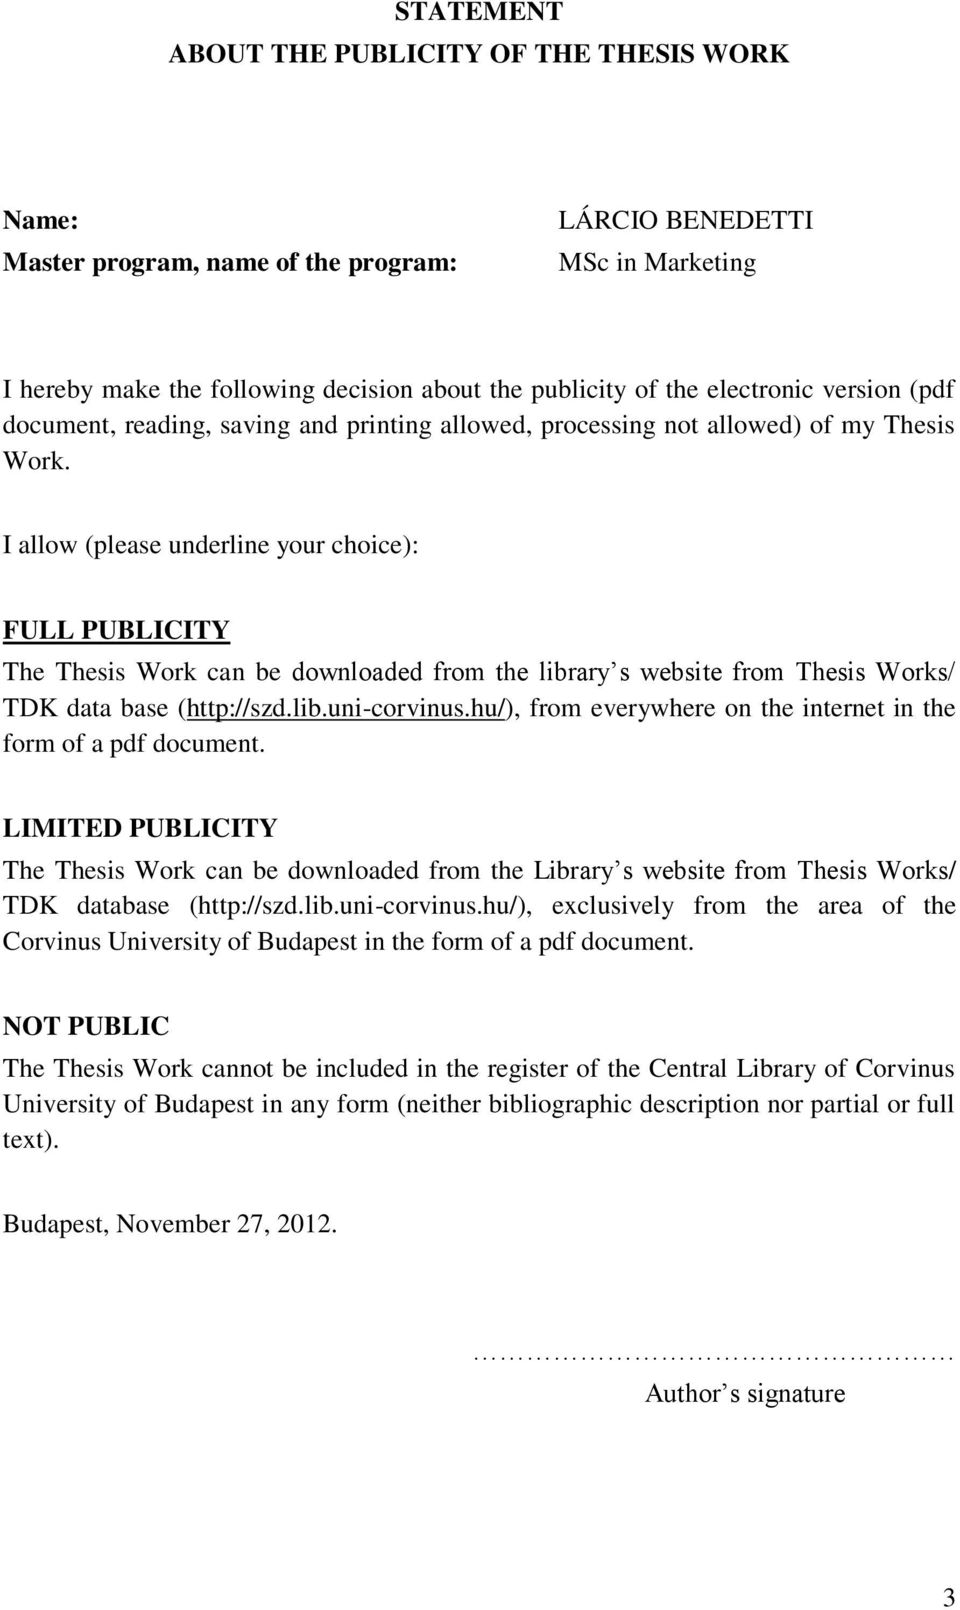 I allow (please underline your choice): FULL PUBLICITY The Thesis Work can be downloaded from the library s website from Thesis Works/ TDK data base (http://szd.lib.uni-corvinus.